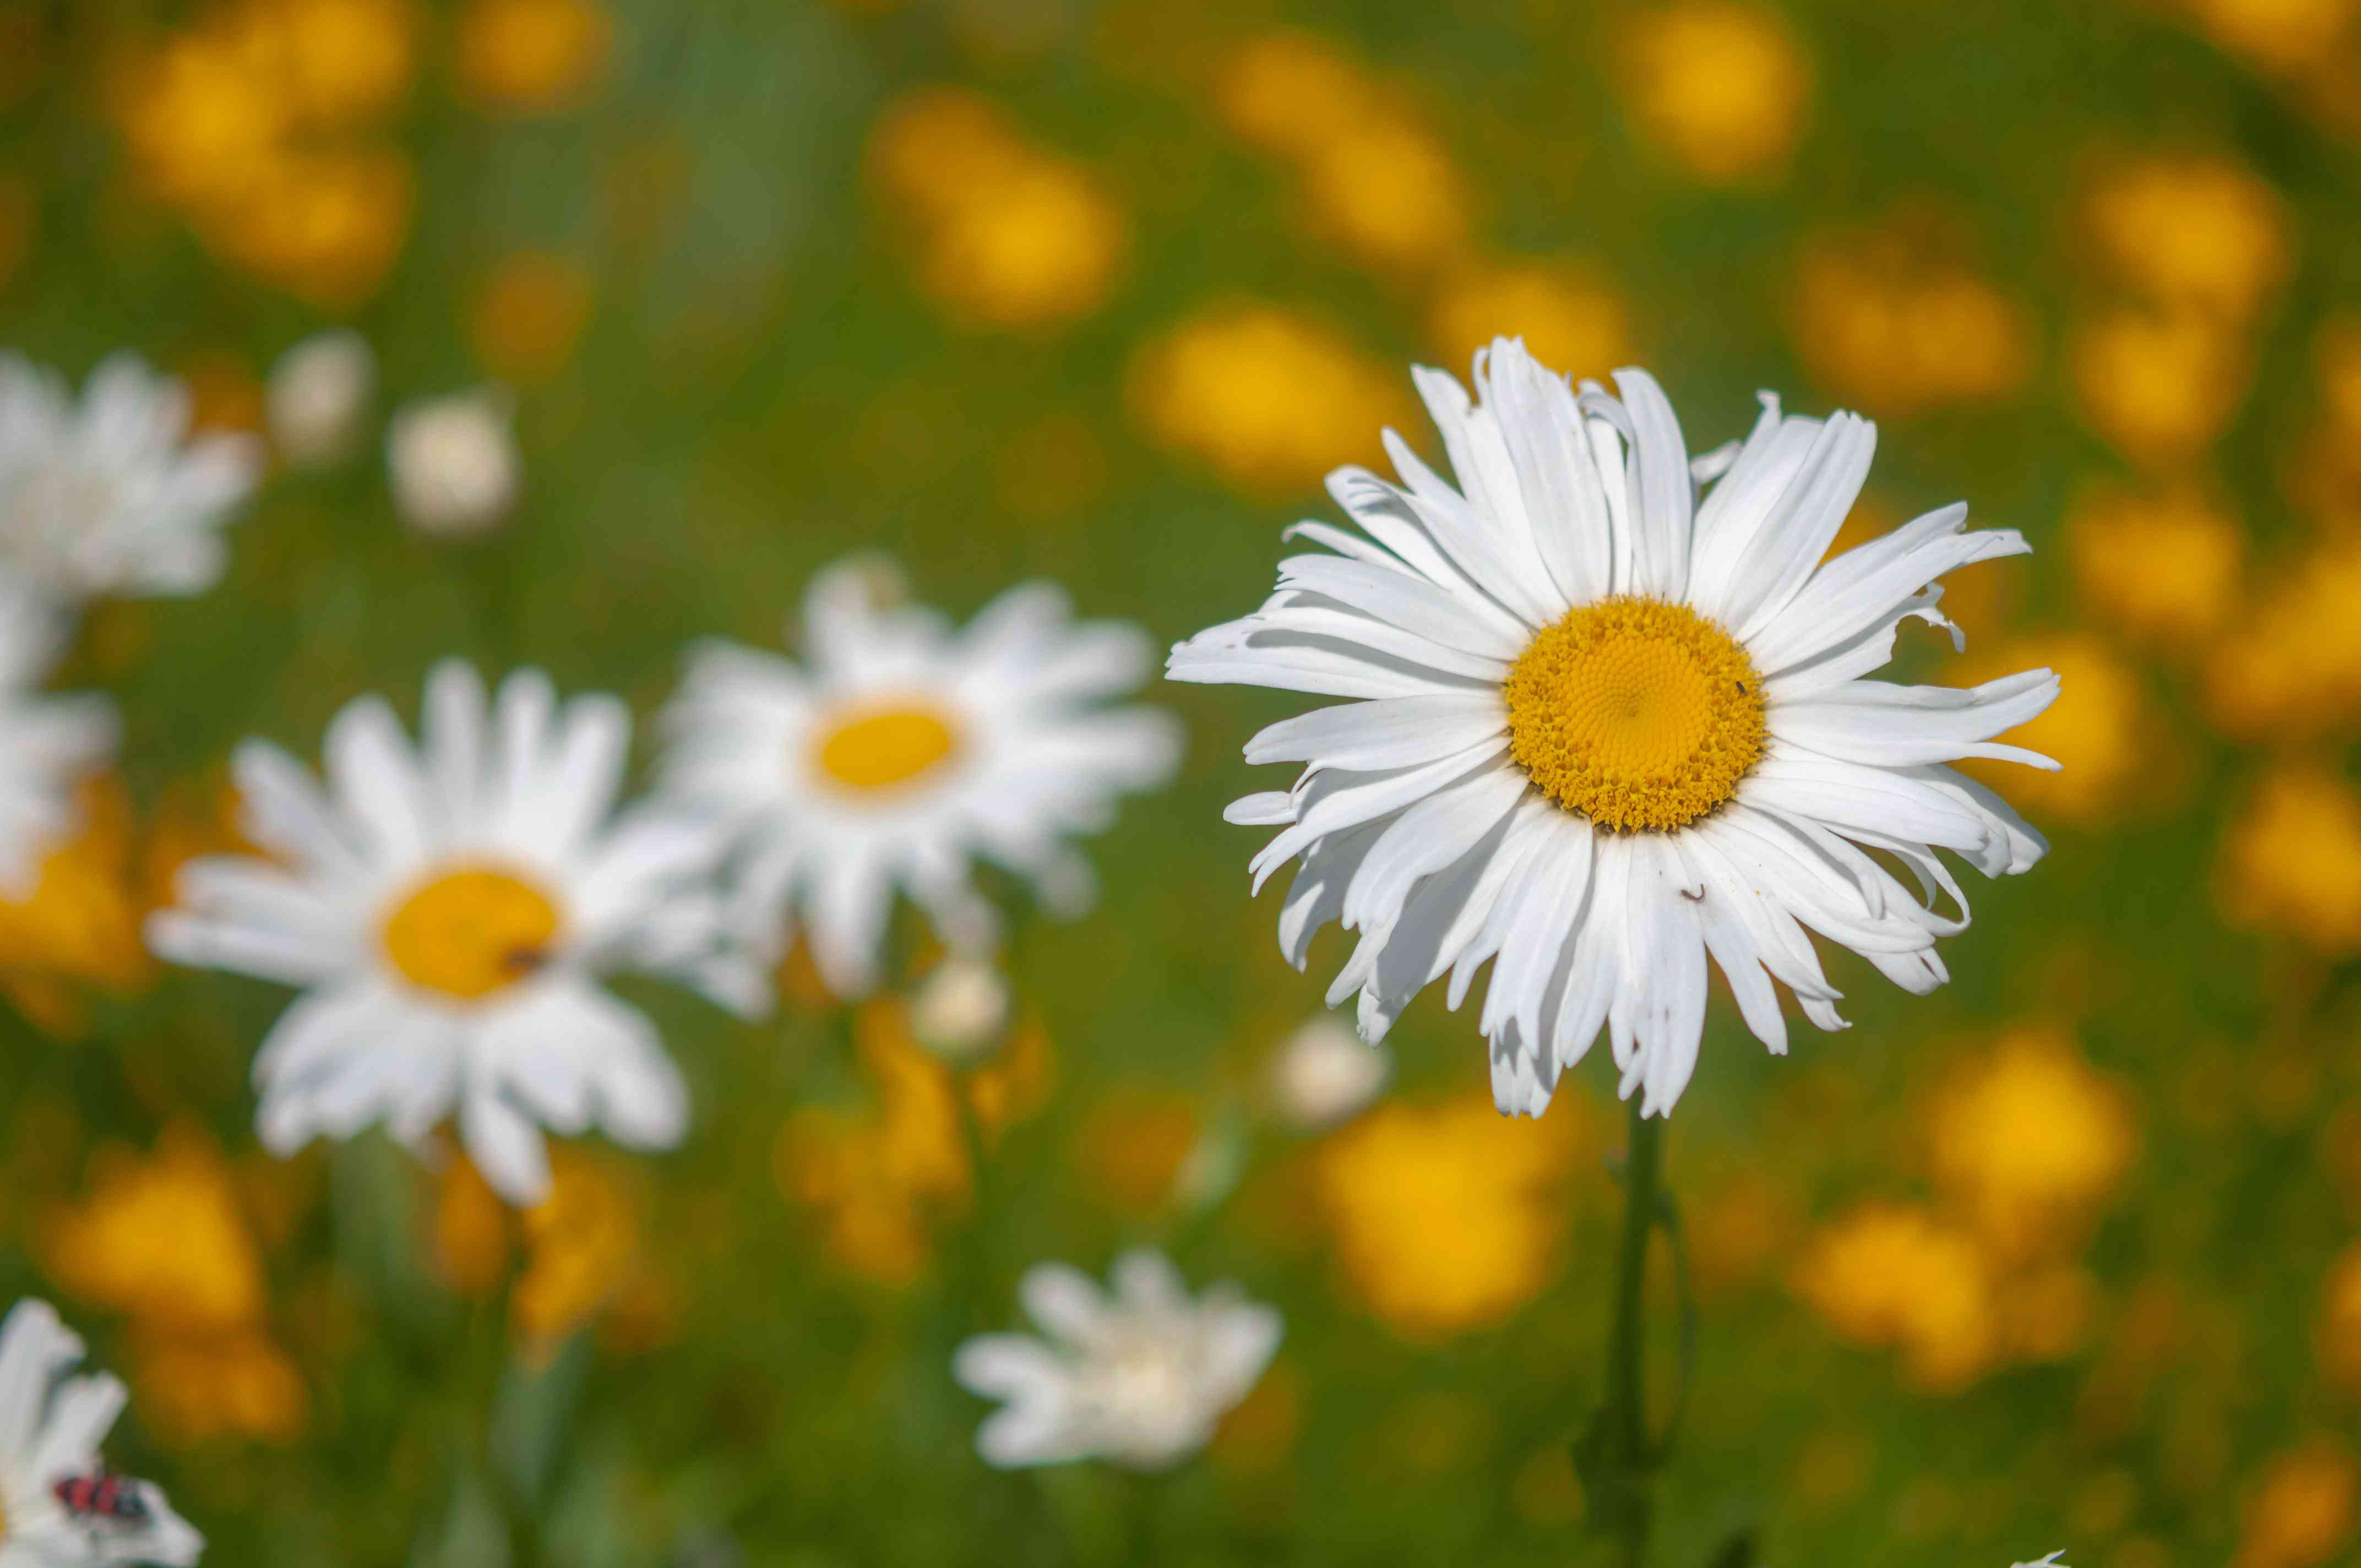 Oxeye daisy flowers with thin white radiating petals on yellow center on thin stems closeup